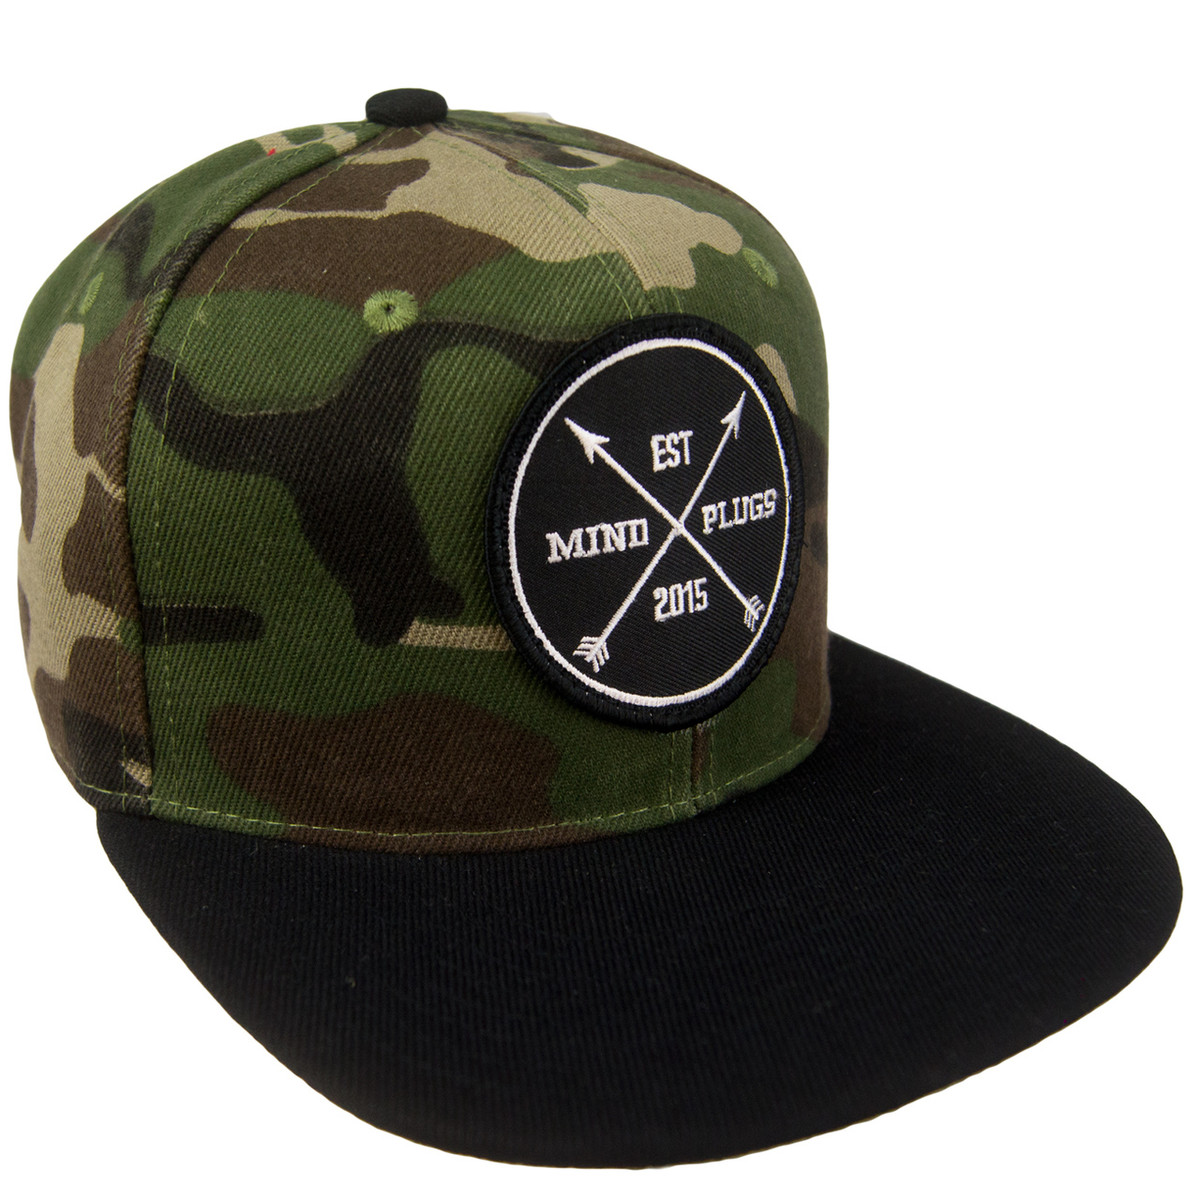 Camo x Black Est Patch Snapback